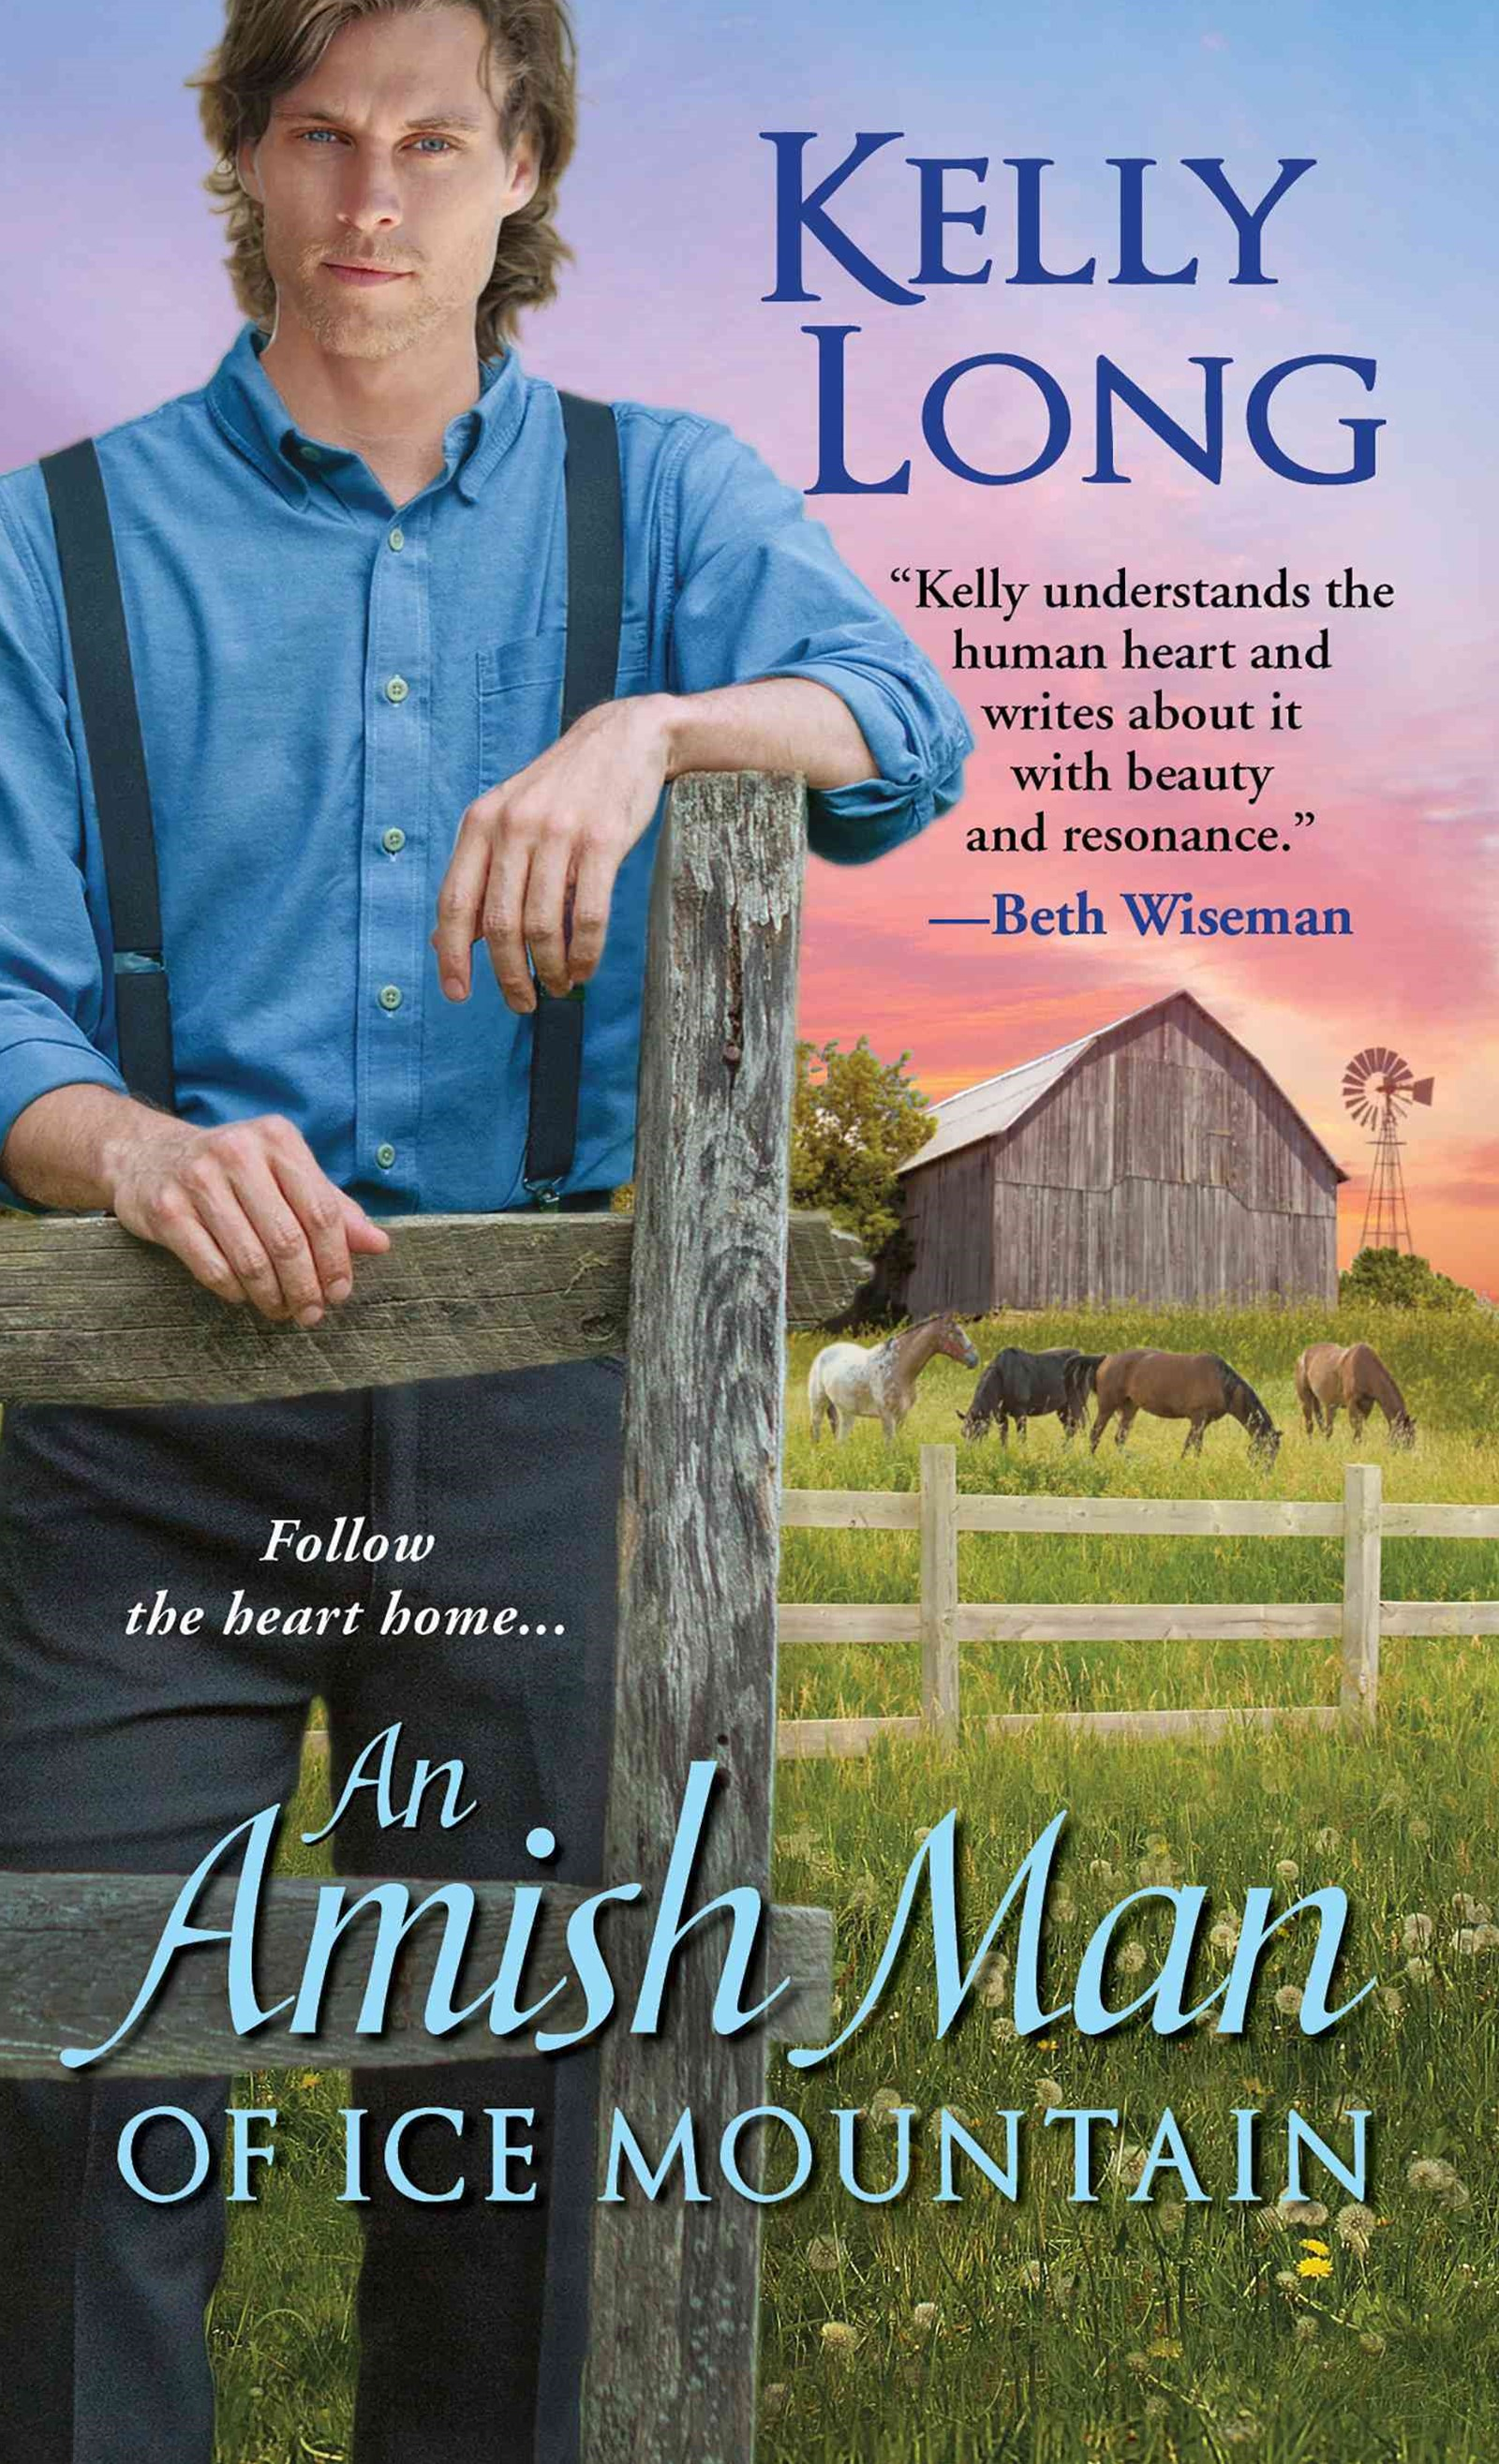 Amish Man Of Ice Mountain, An